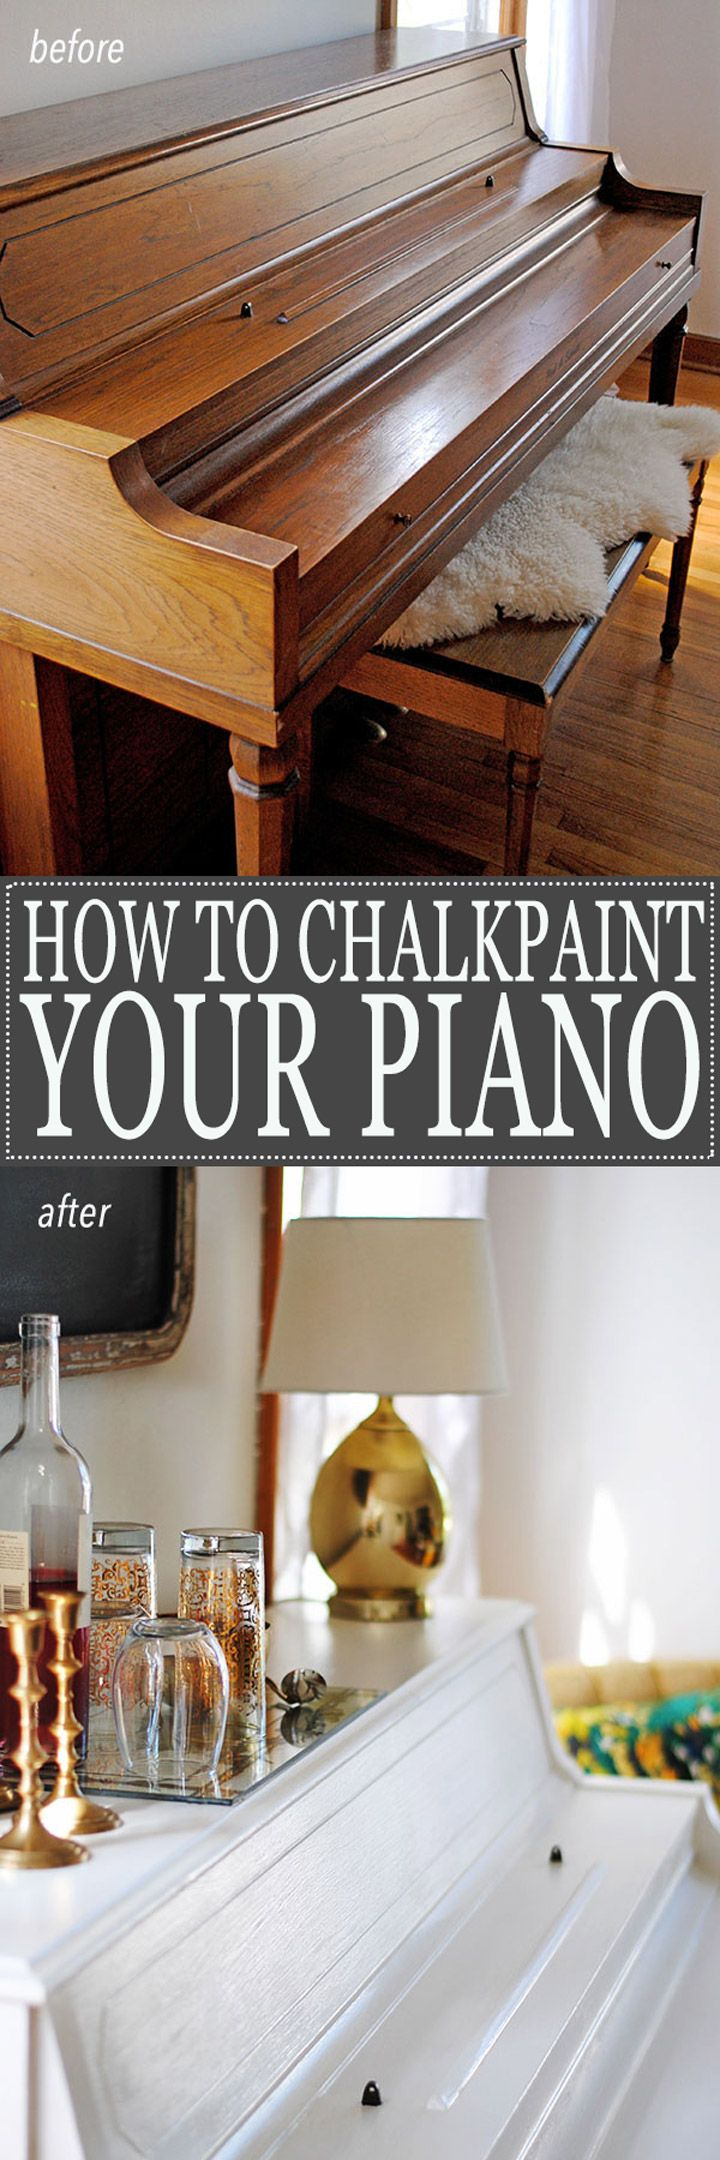 how to paint your piano white!